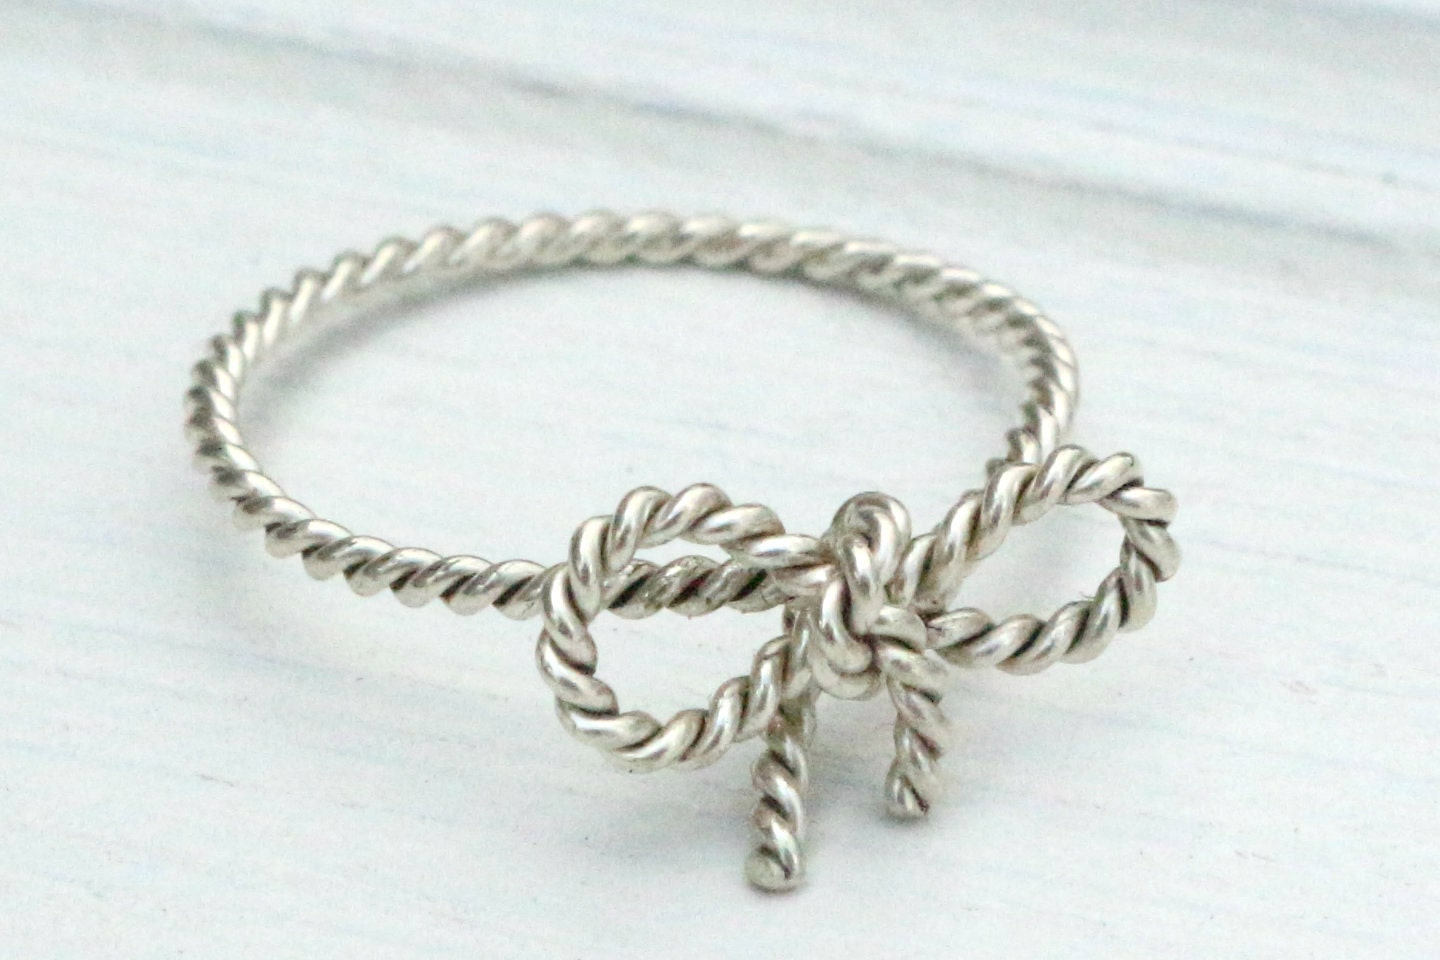 TINY BOW Ring - Forget Me KNOT Ring - Twisted Sterling Silver